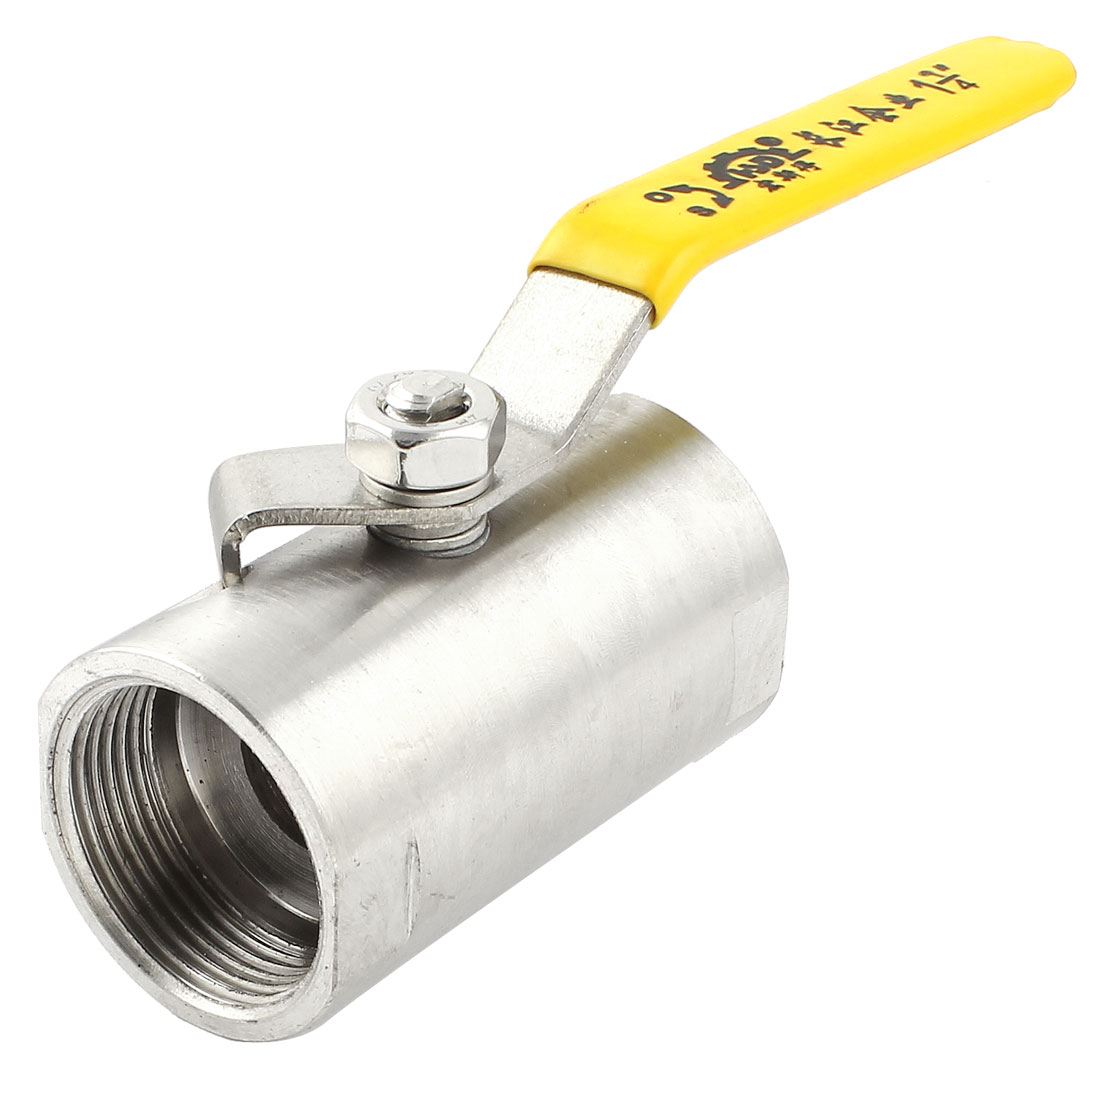 DN32 1 1/4PT Female Yellow Plastic Coated Handle 90 Degree Rotary Lever Water Flow Control Straight Ball Valve